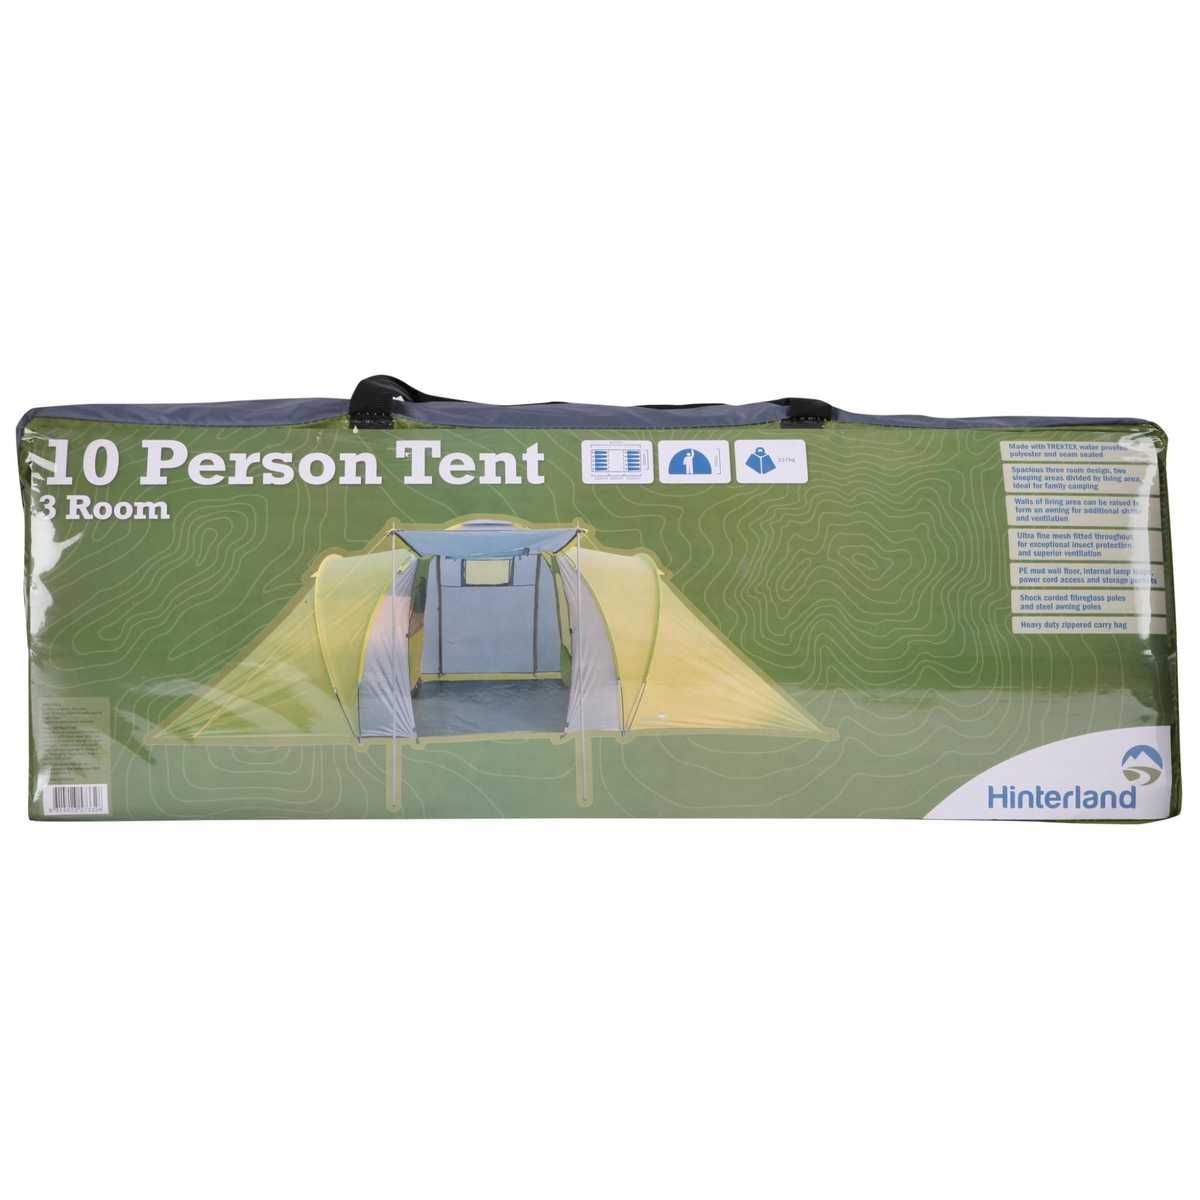 Hinterland 10 Person 3 Room Tent | BIG W | Lets go camping